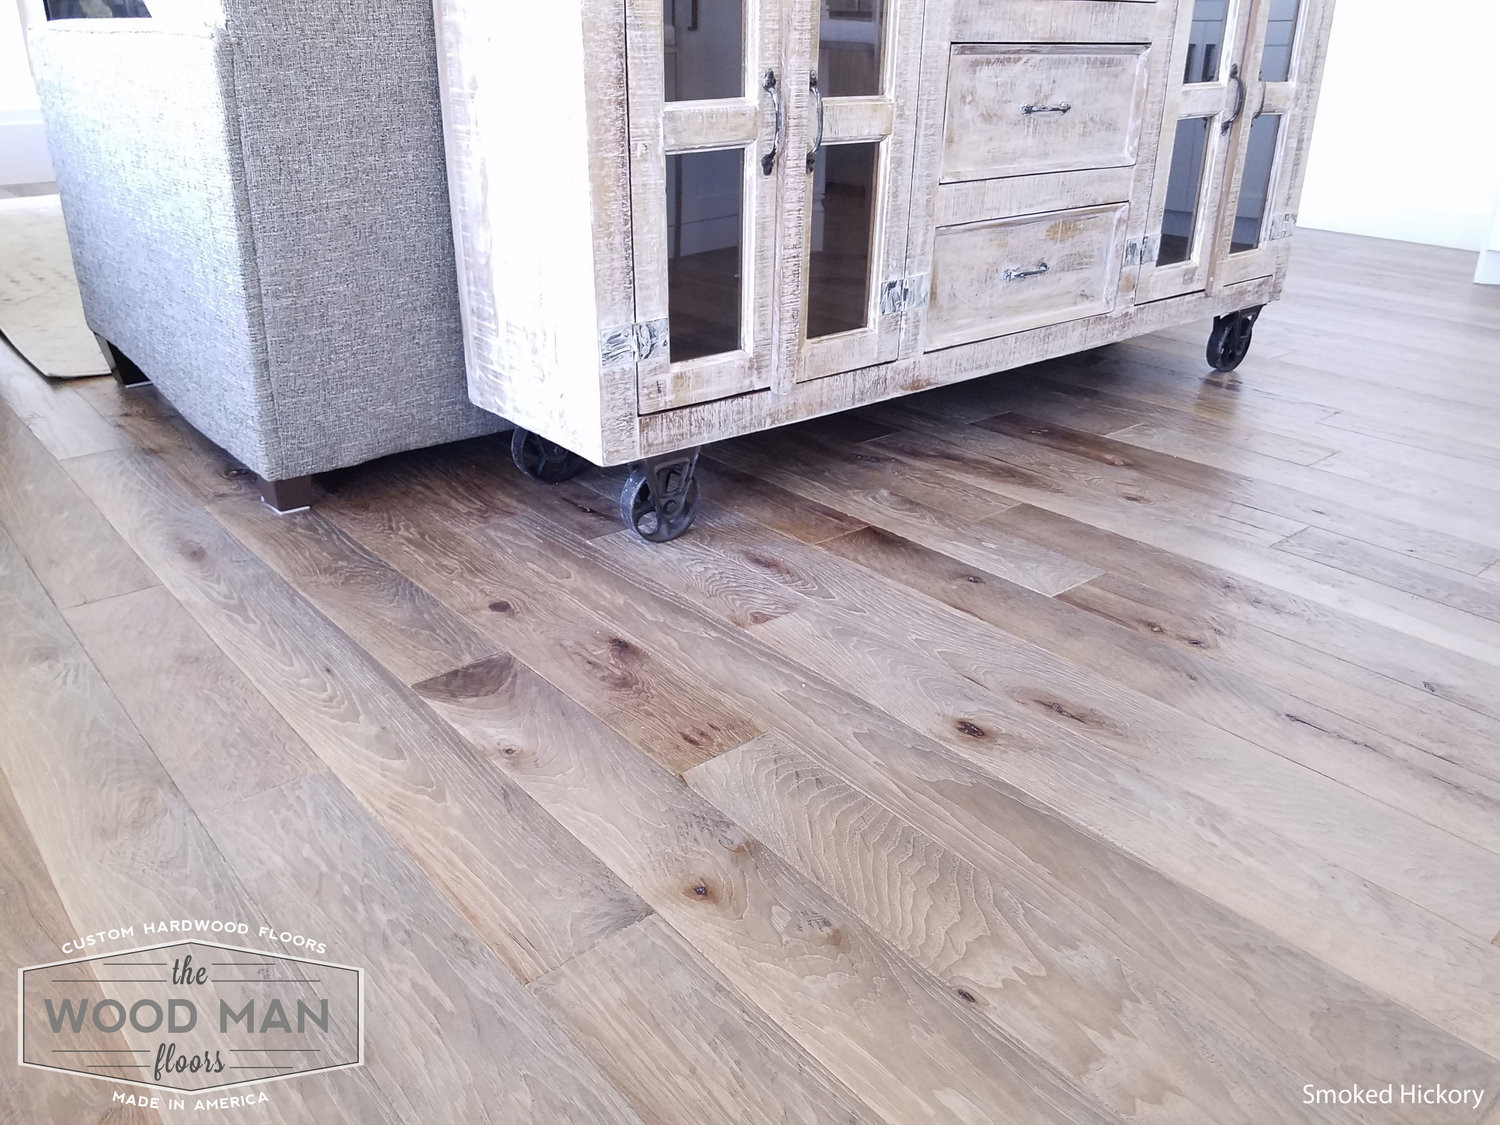 hickory fireside hardwood flooring of the wood man floors pictures the wood man floors intended for smoked hickory huish 2